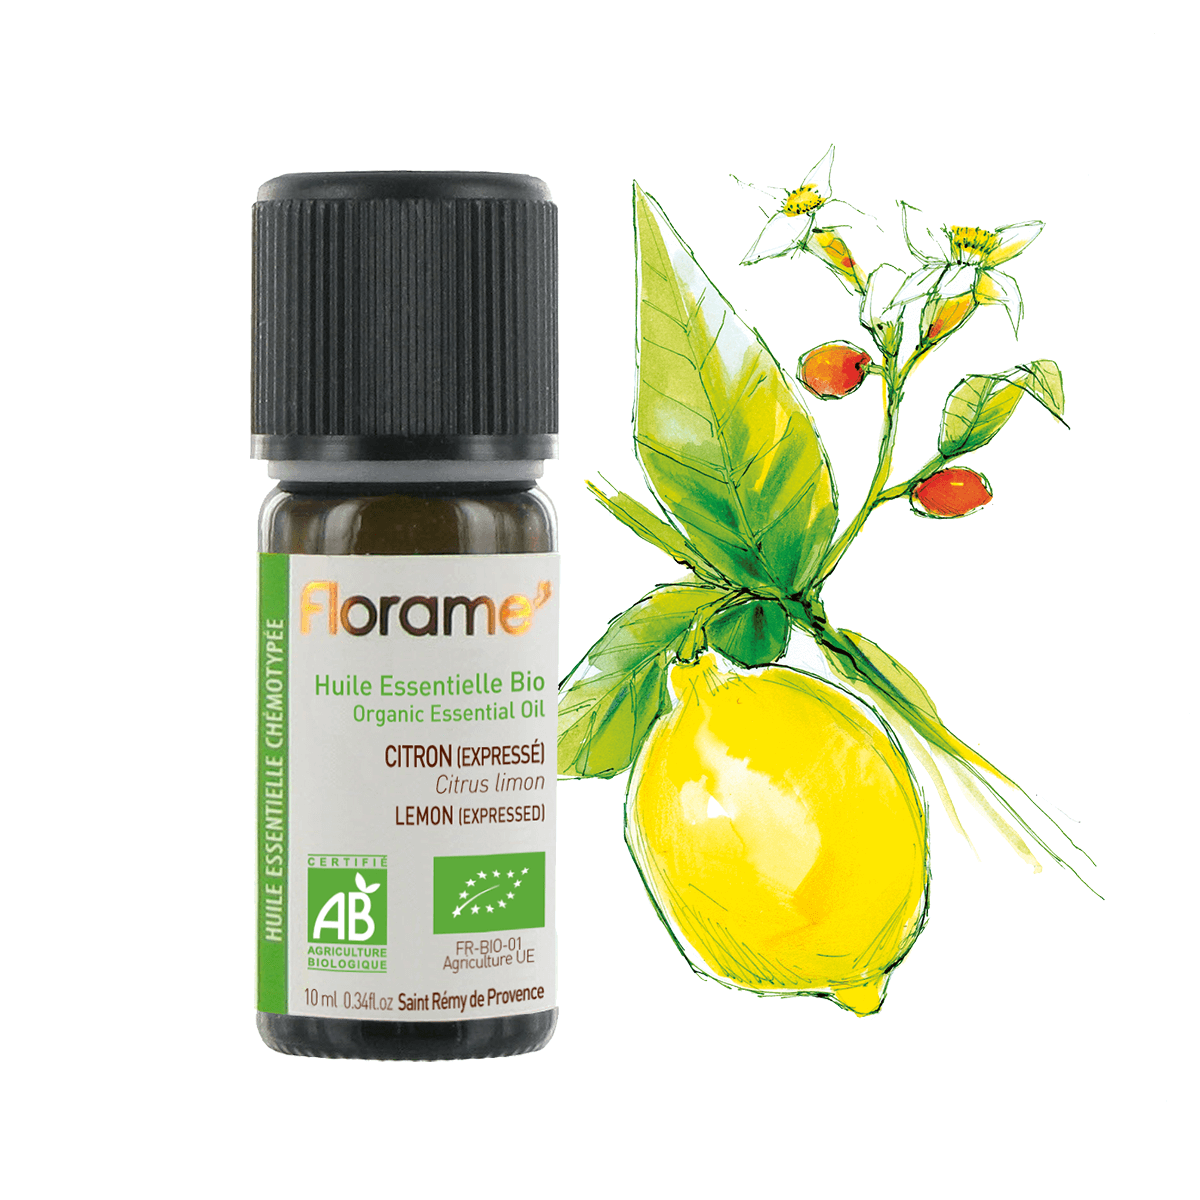 FLORAME Organic Essential Oil - Lemon (Expressed) 有機檸檬精油 [10ml] - MINT Organics